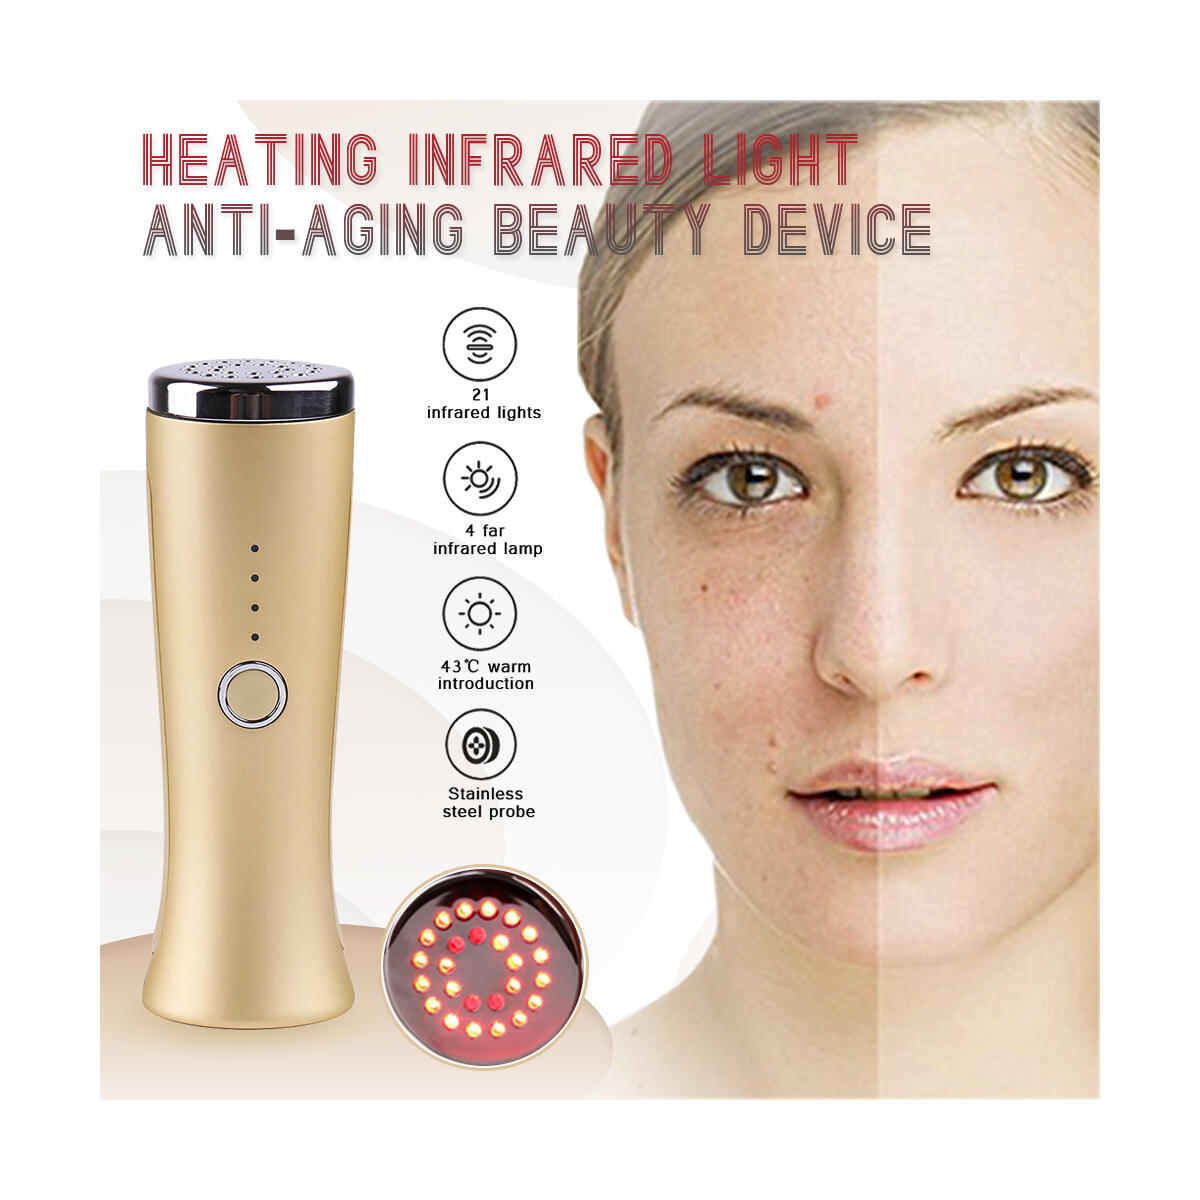 Red Light Therapy LED Infrared - Face Lift Skin Rejuvenation - Face Tightening Instrument - Galvanic Machine Anti Aging Device Wrinkle Removal Wand (Rebate applicable on eBay purchase only)